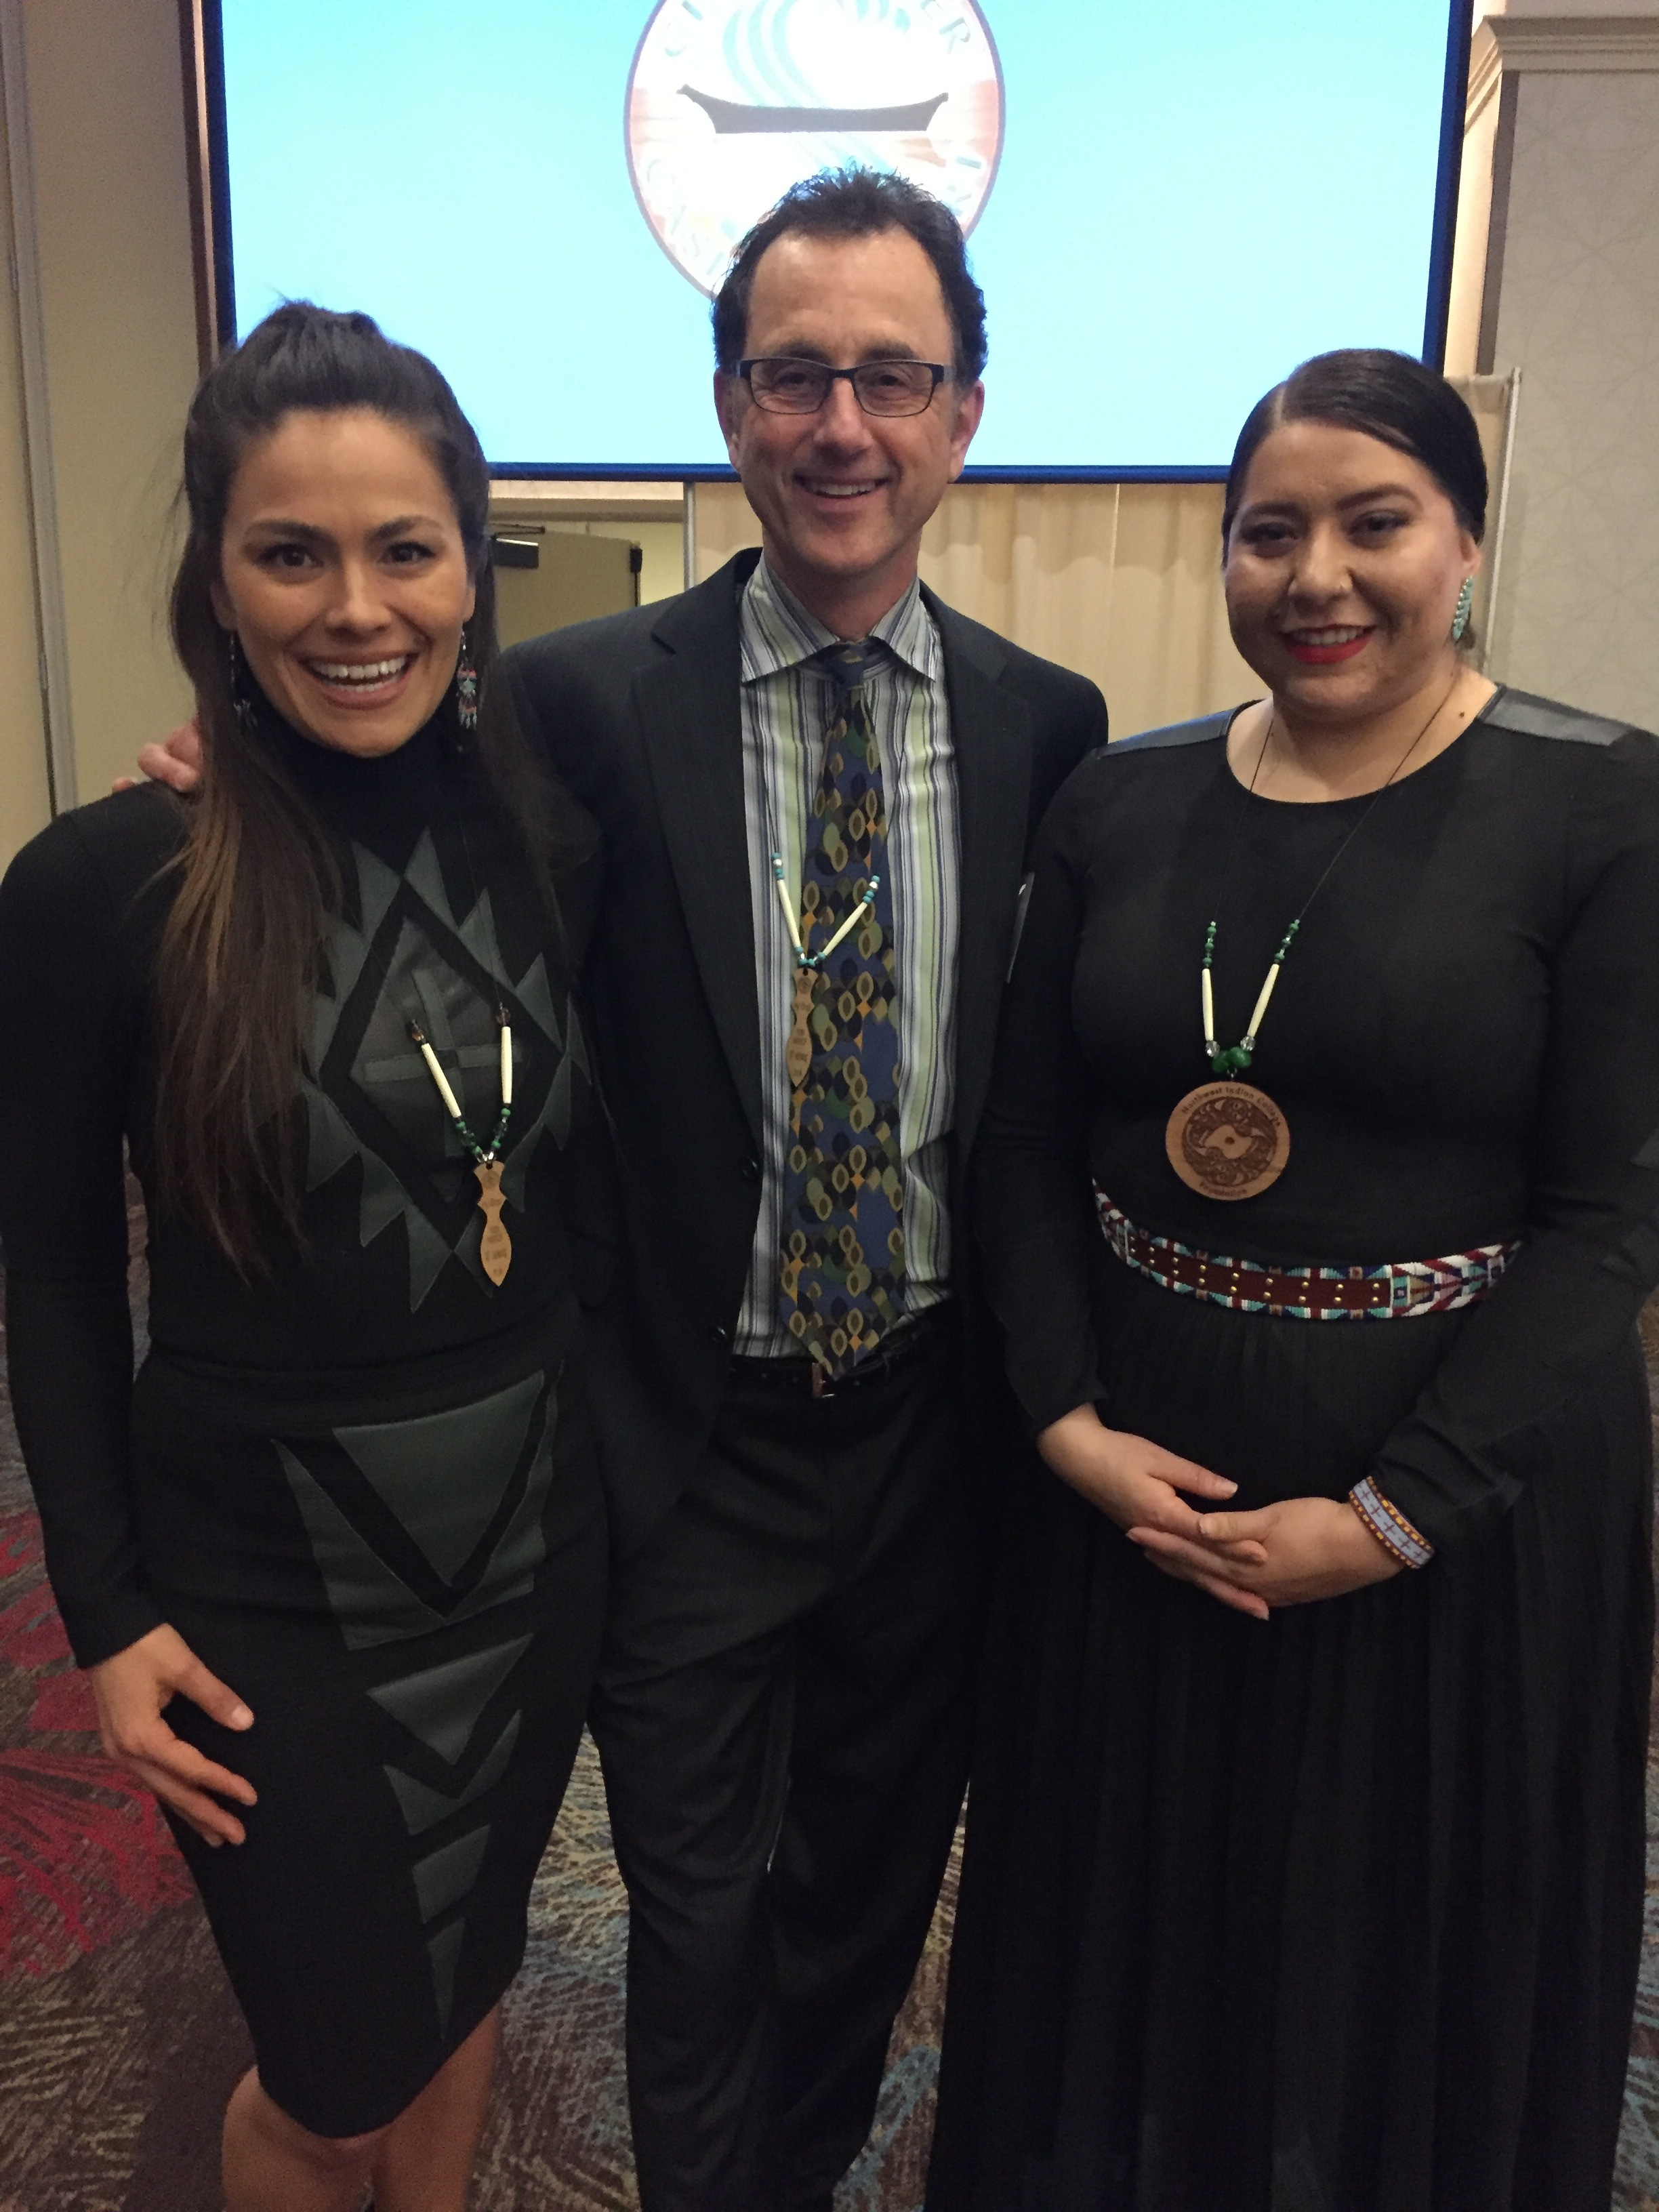 Temryss Lane - Emcee, Mitch Lambley - Auctioneer and Bethany Yellowtail - Fashion Designer & Keynote Speaker